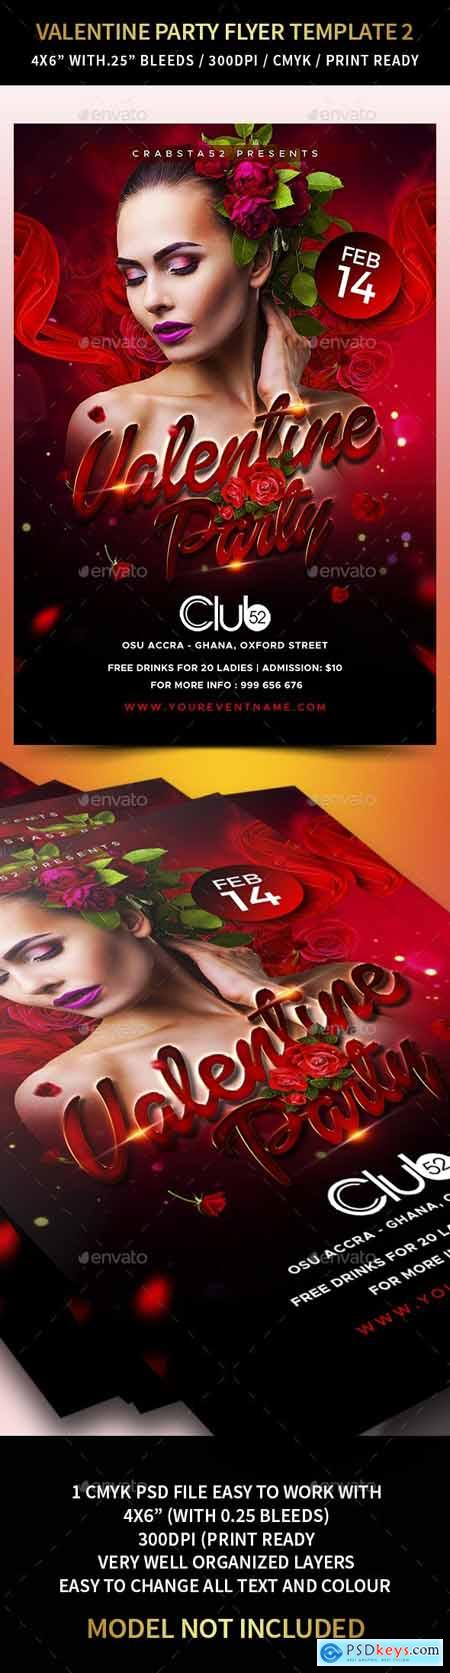 Valentine Party Flyer Template 2 23168285